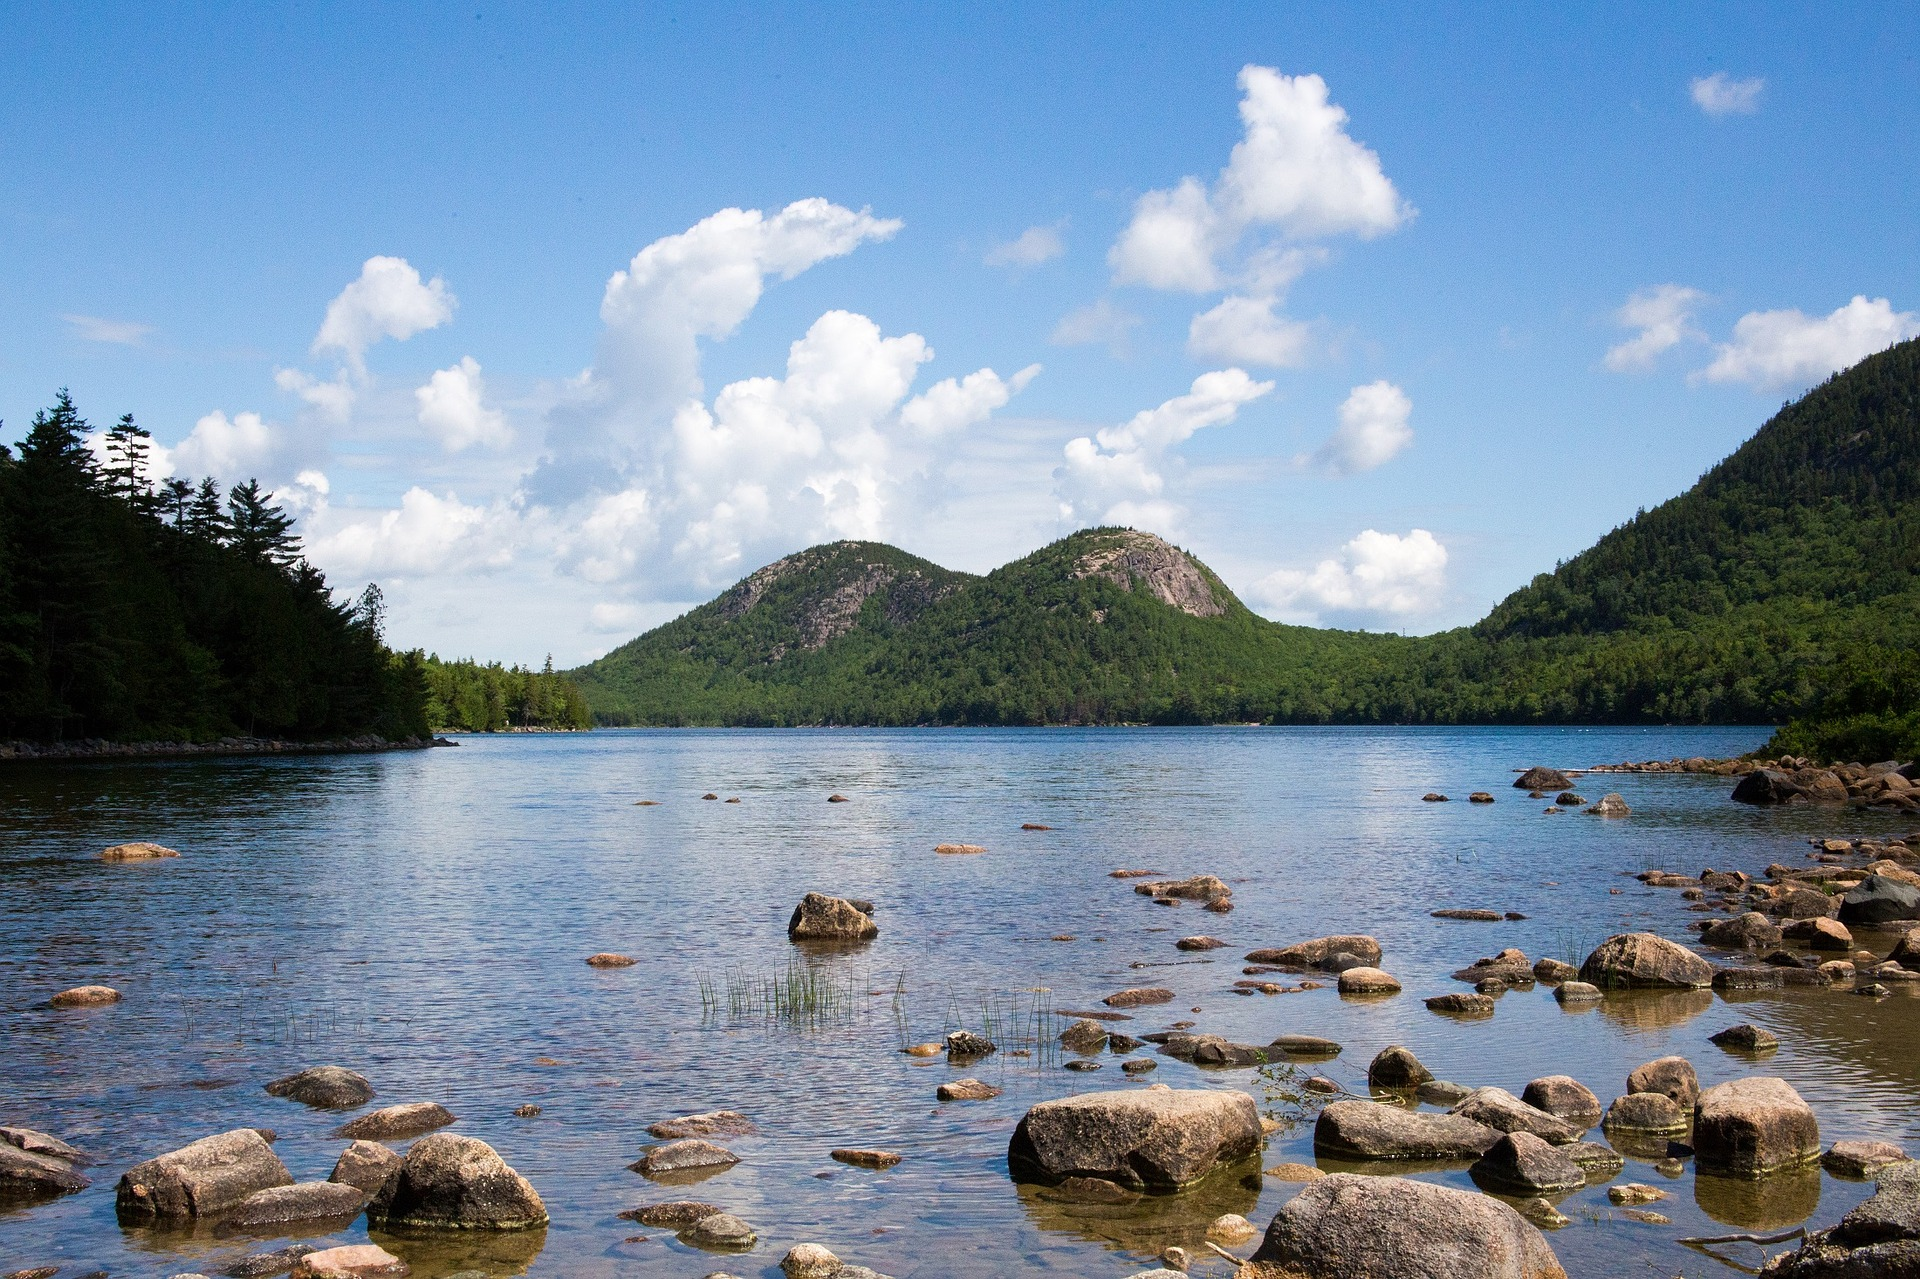 Jordan Pond - Self Drive Tours in the USA